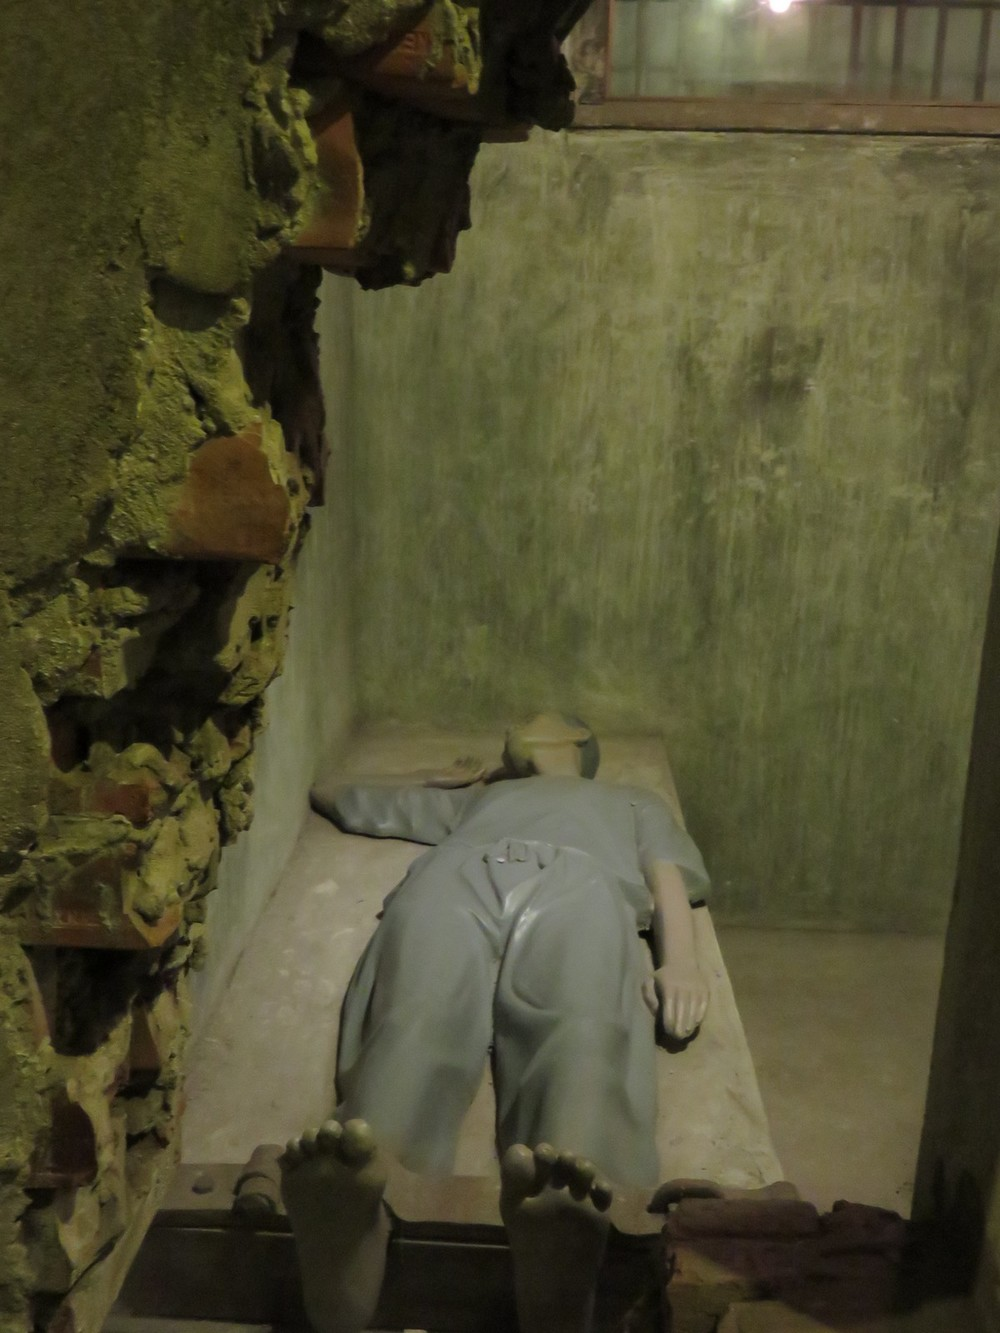 More creepy statues of French-imposed prison life